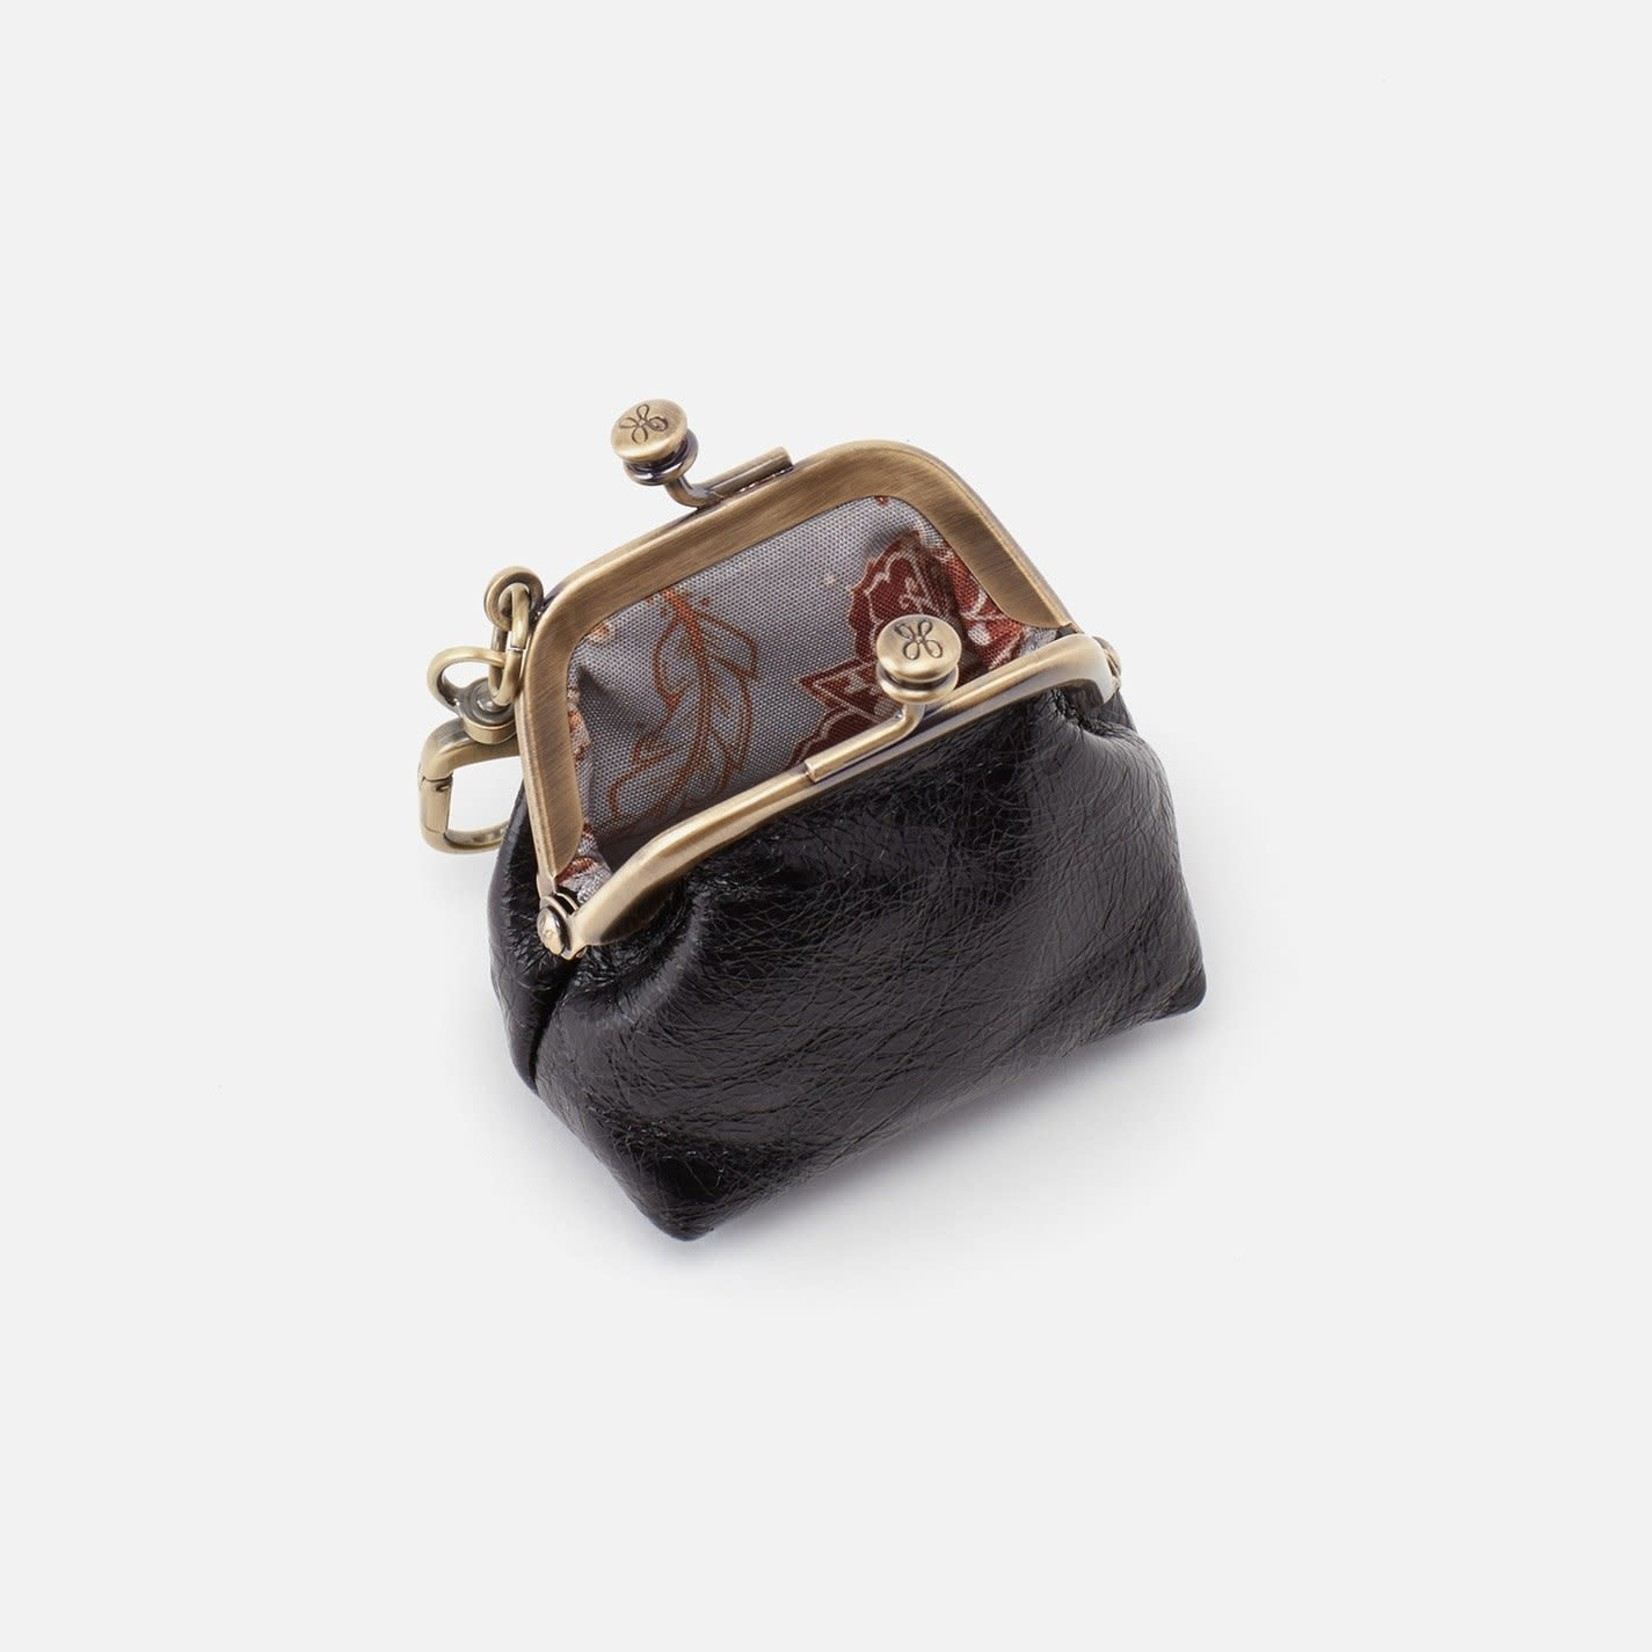 HOBO Run Black Vintage Leather Frame Pouch